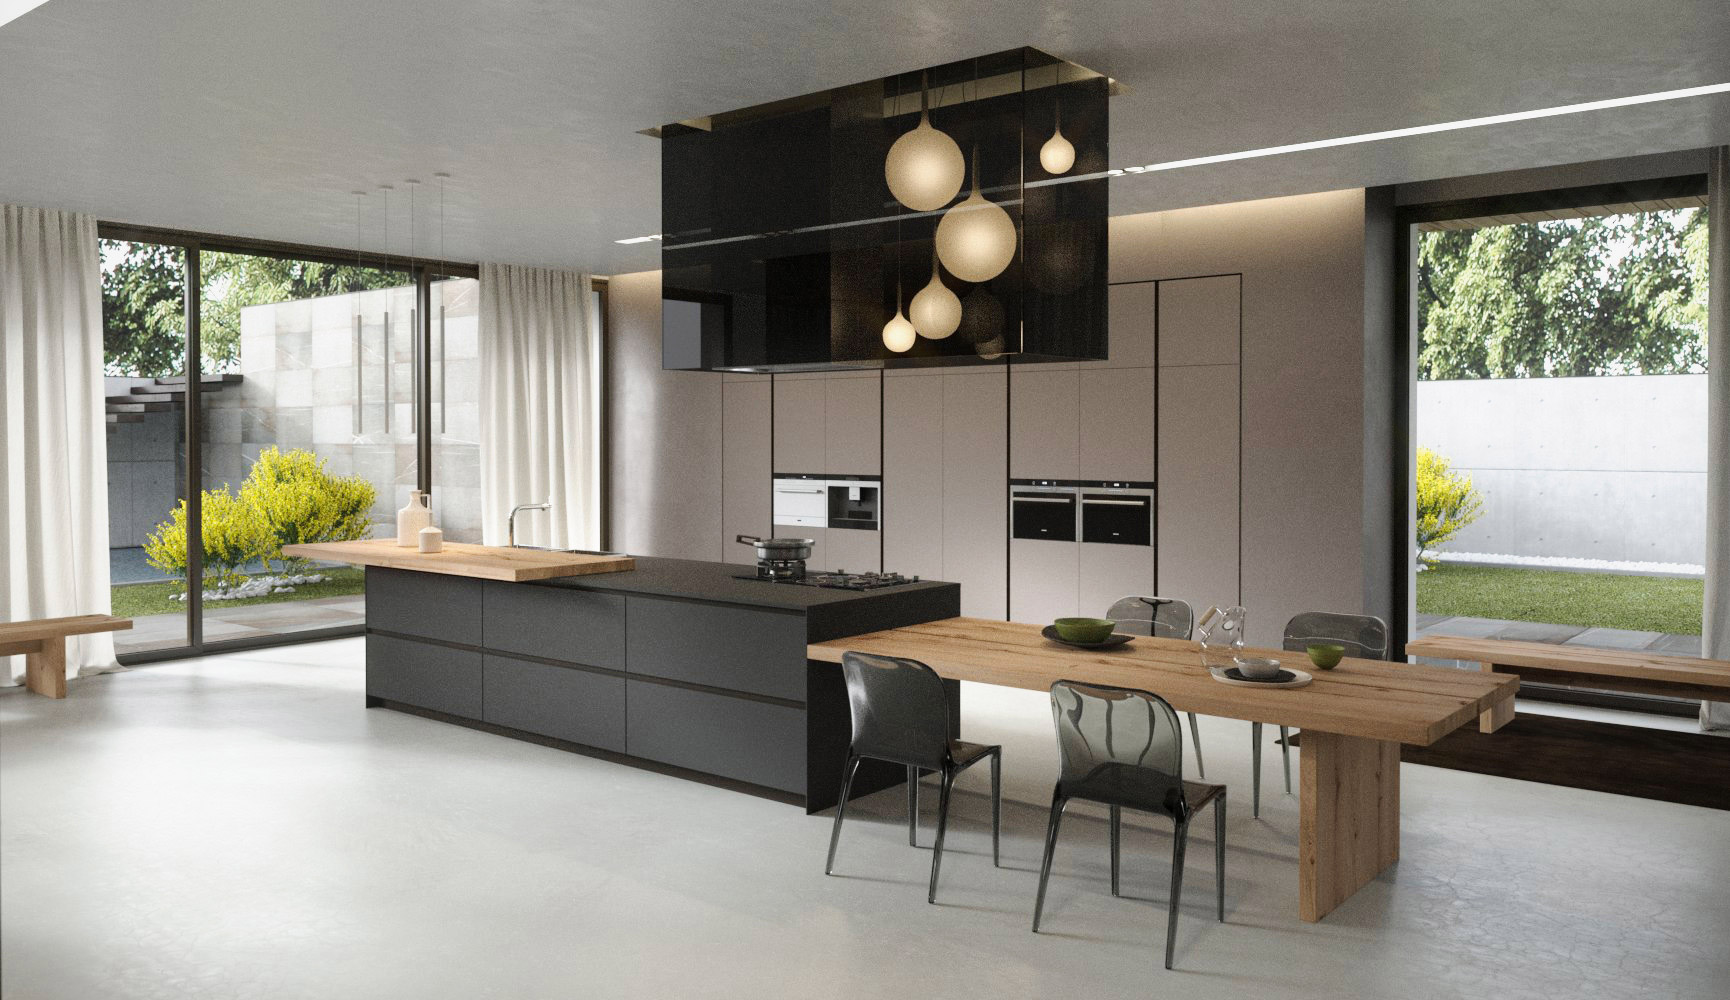 Kitchen Design Awards Best Heights Minosa Design Award Kbdi Kitchen Large Of 2013 Kitchen . Review